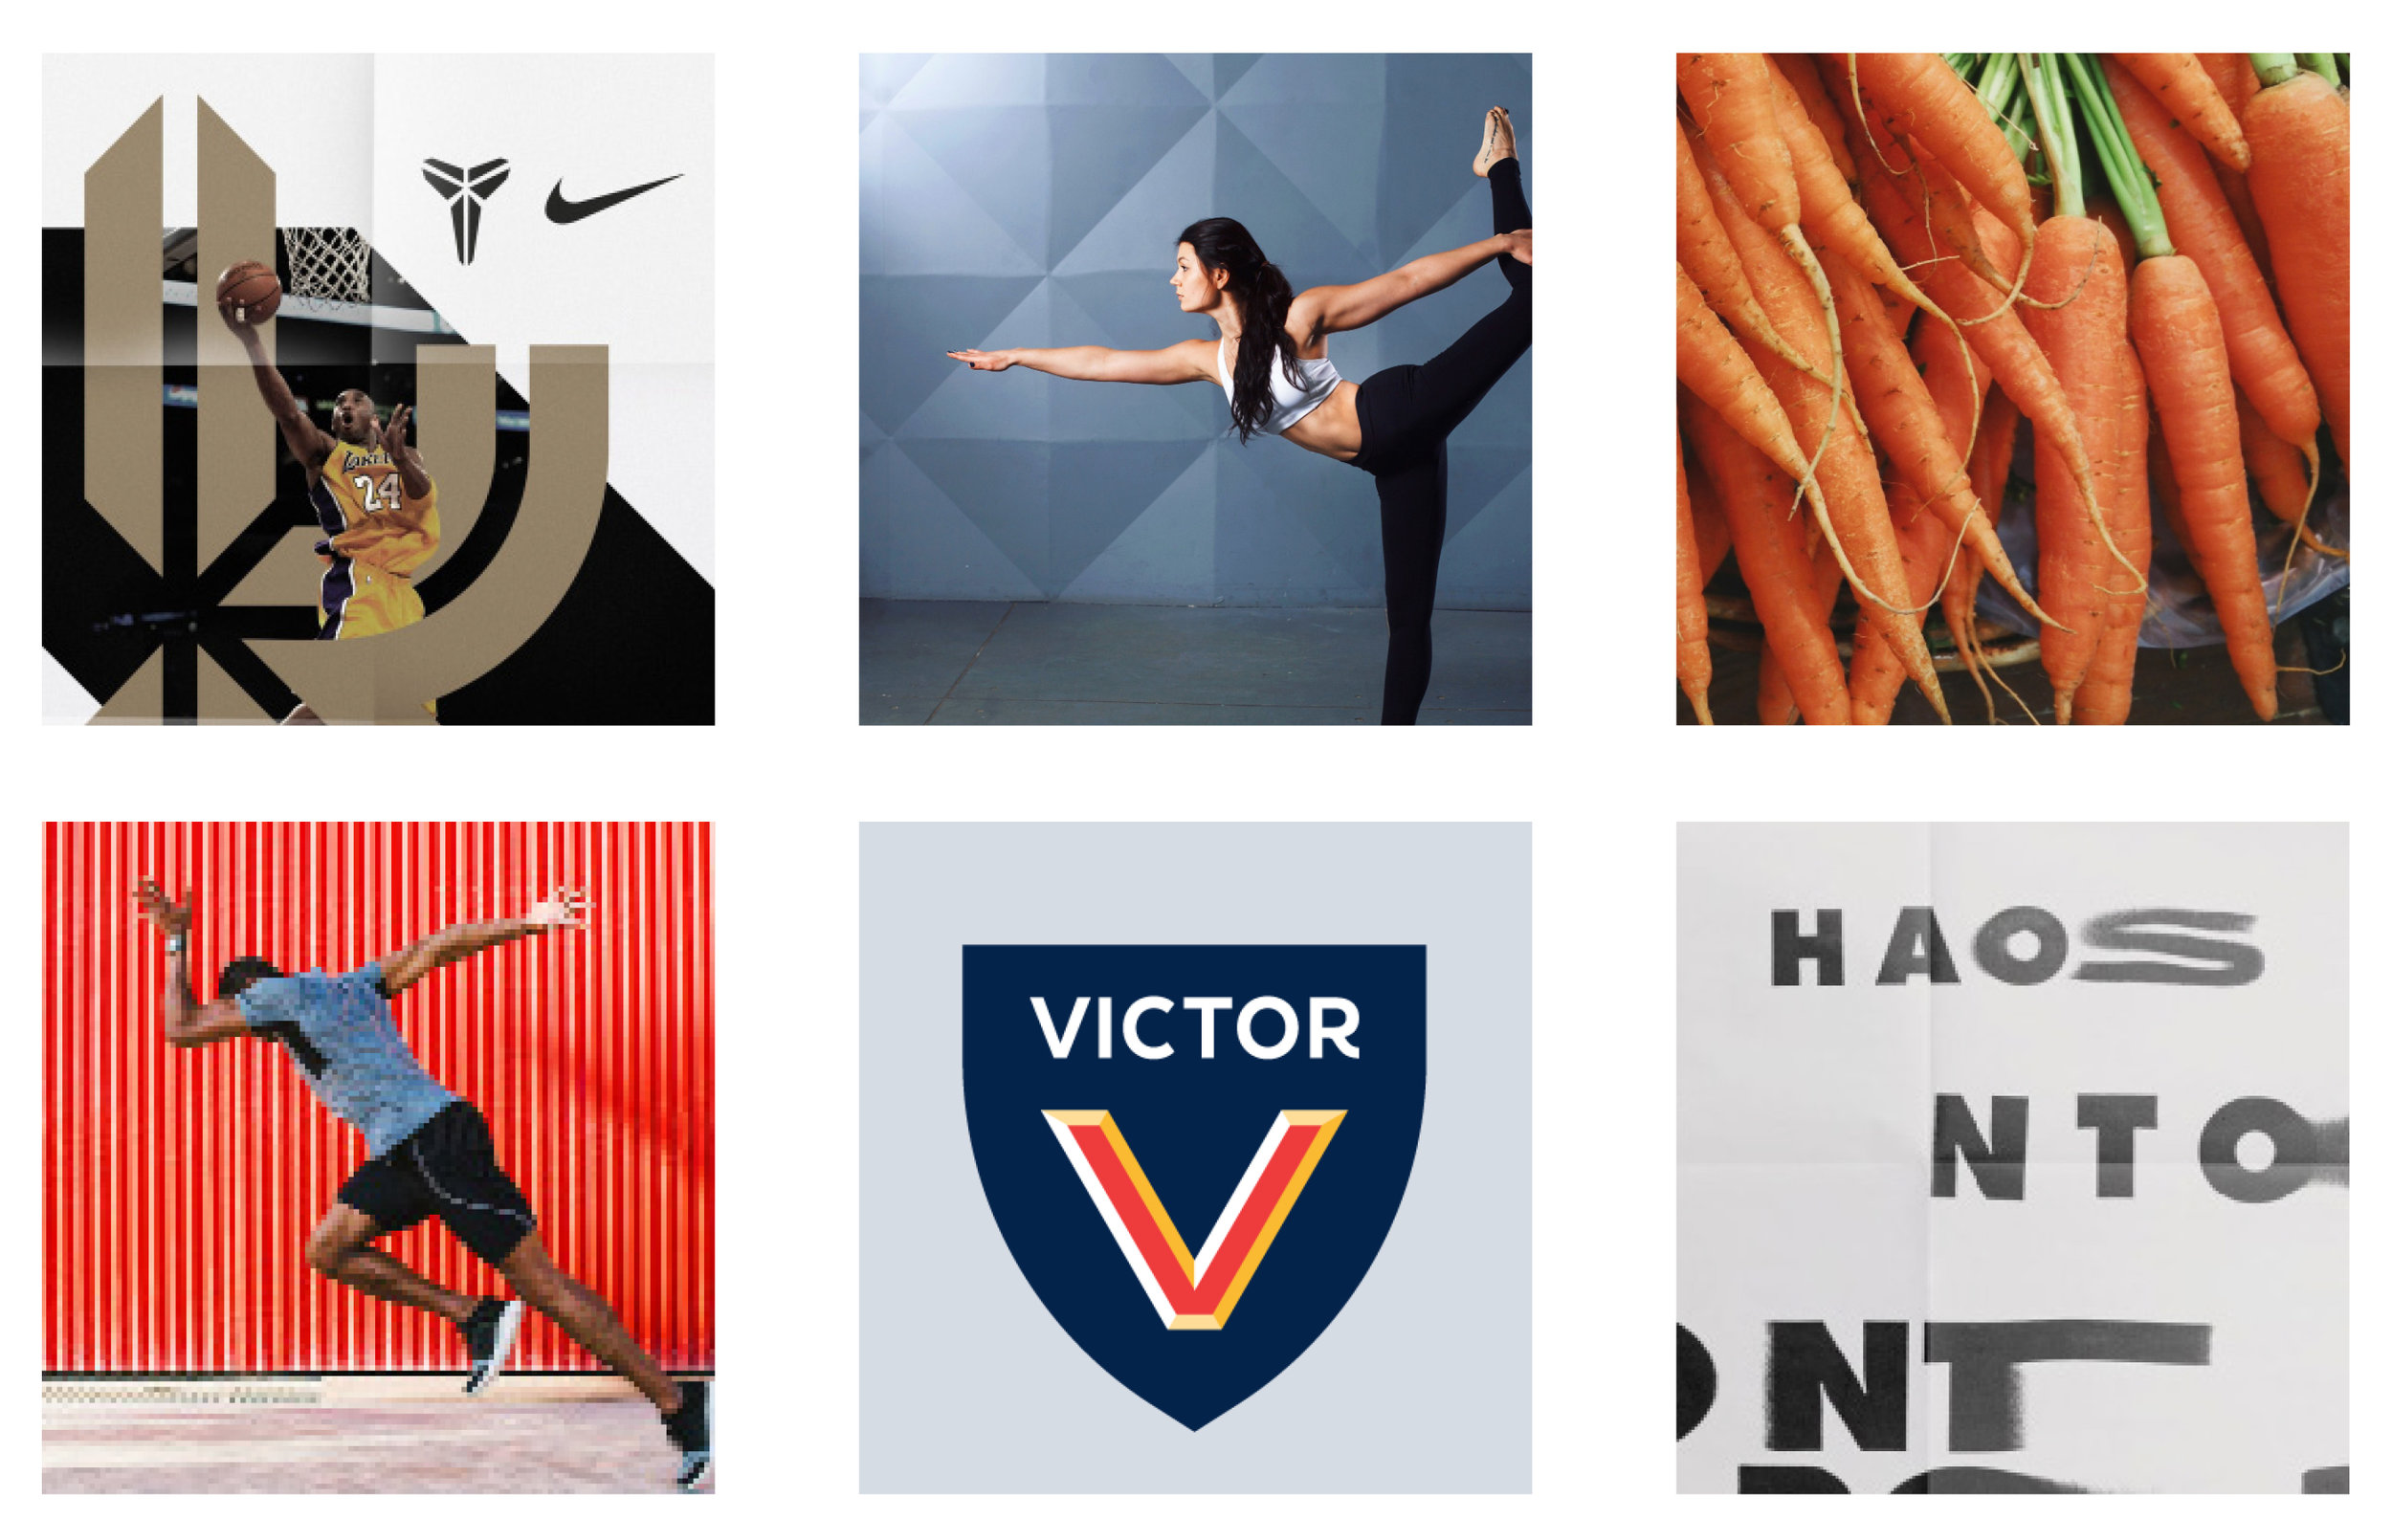 Moodboard: Inspiring, in the moment, movement, bold